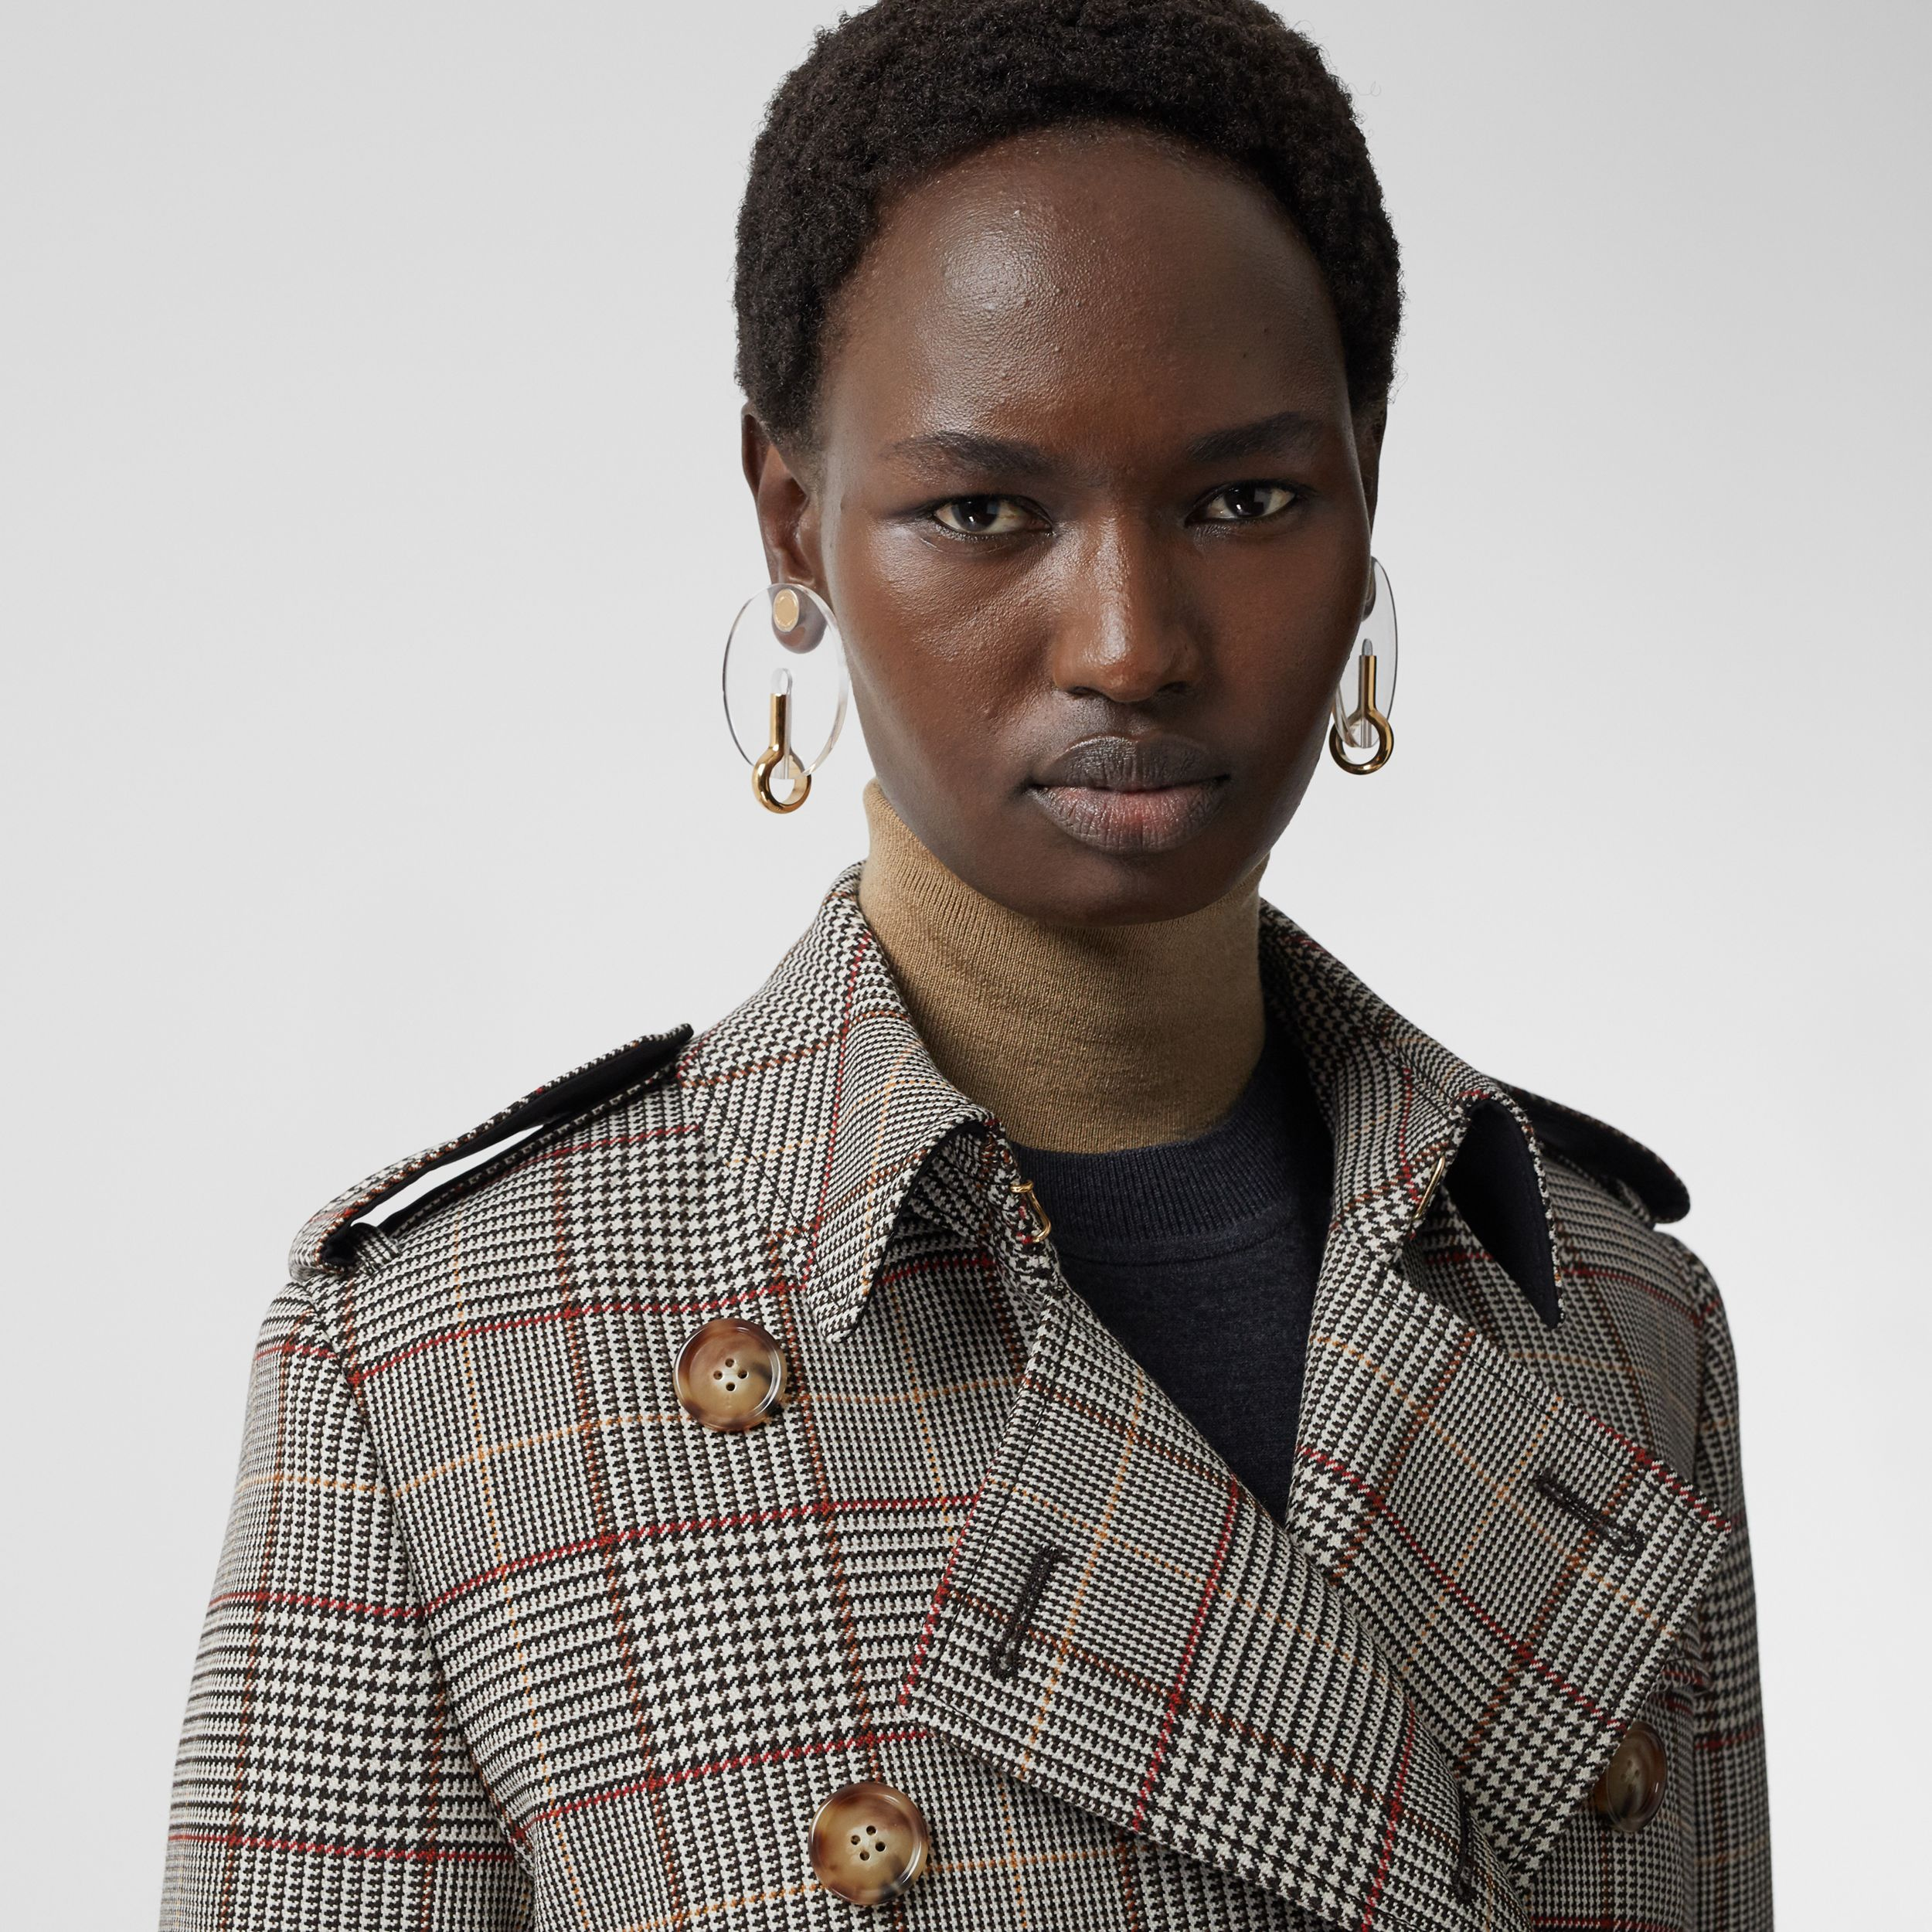 Prince of Wales Check Wool Trench Coat in Clove Brown - Women | Burberry Hong Kong S.A.R. - 2